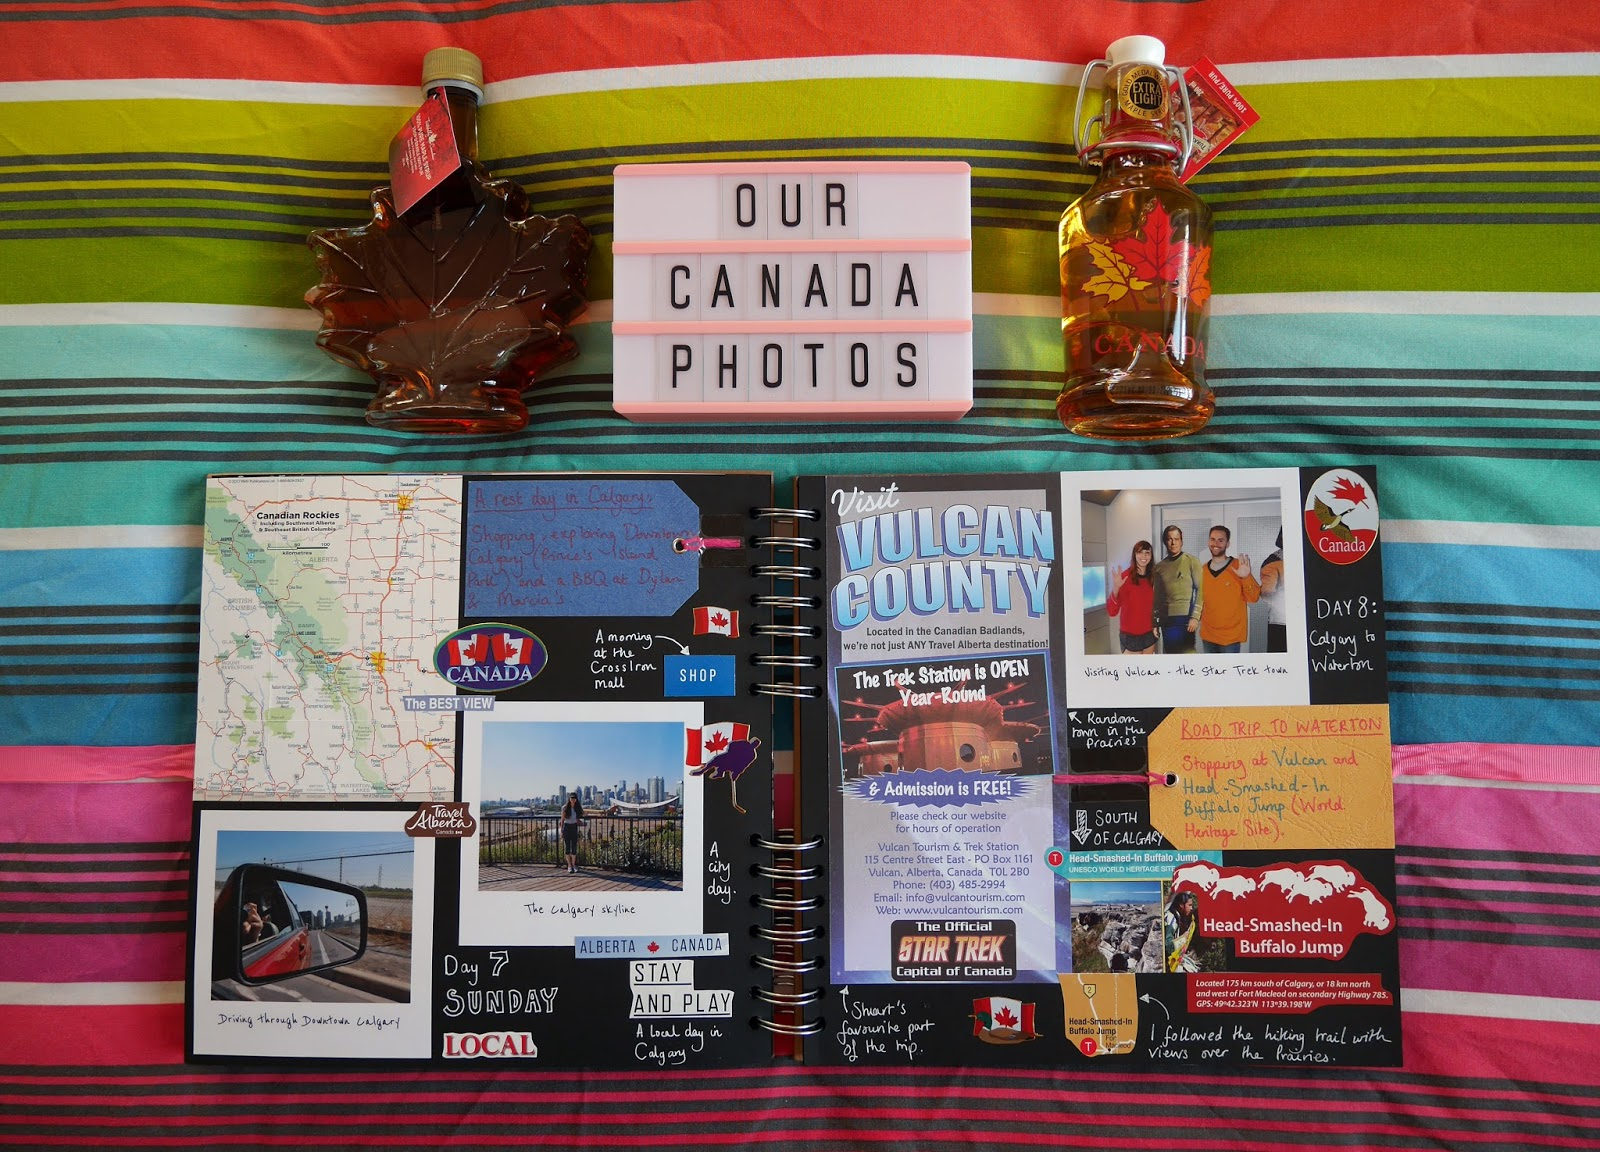 Canada travel scrapbook pages 9-10 (Calgary and Vulcan) featuring Printiki's retro prints